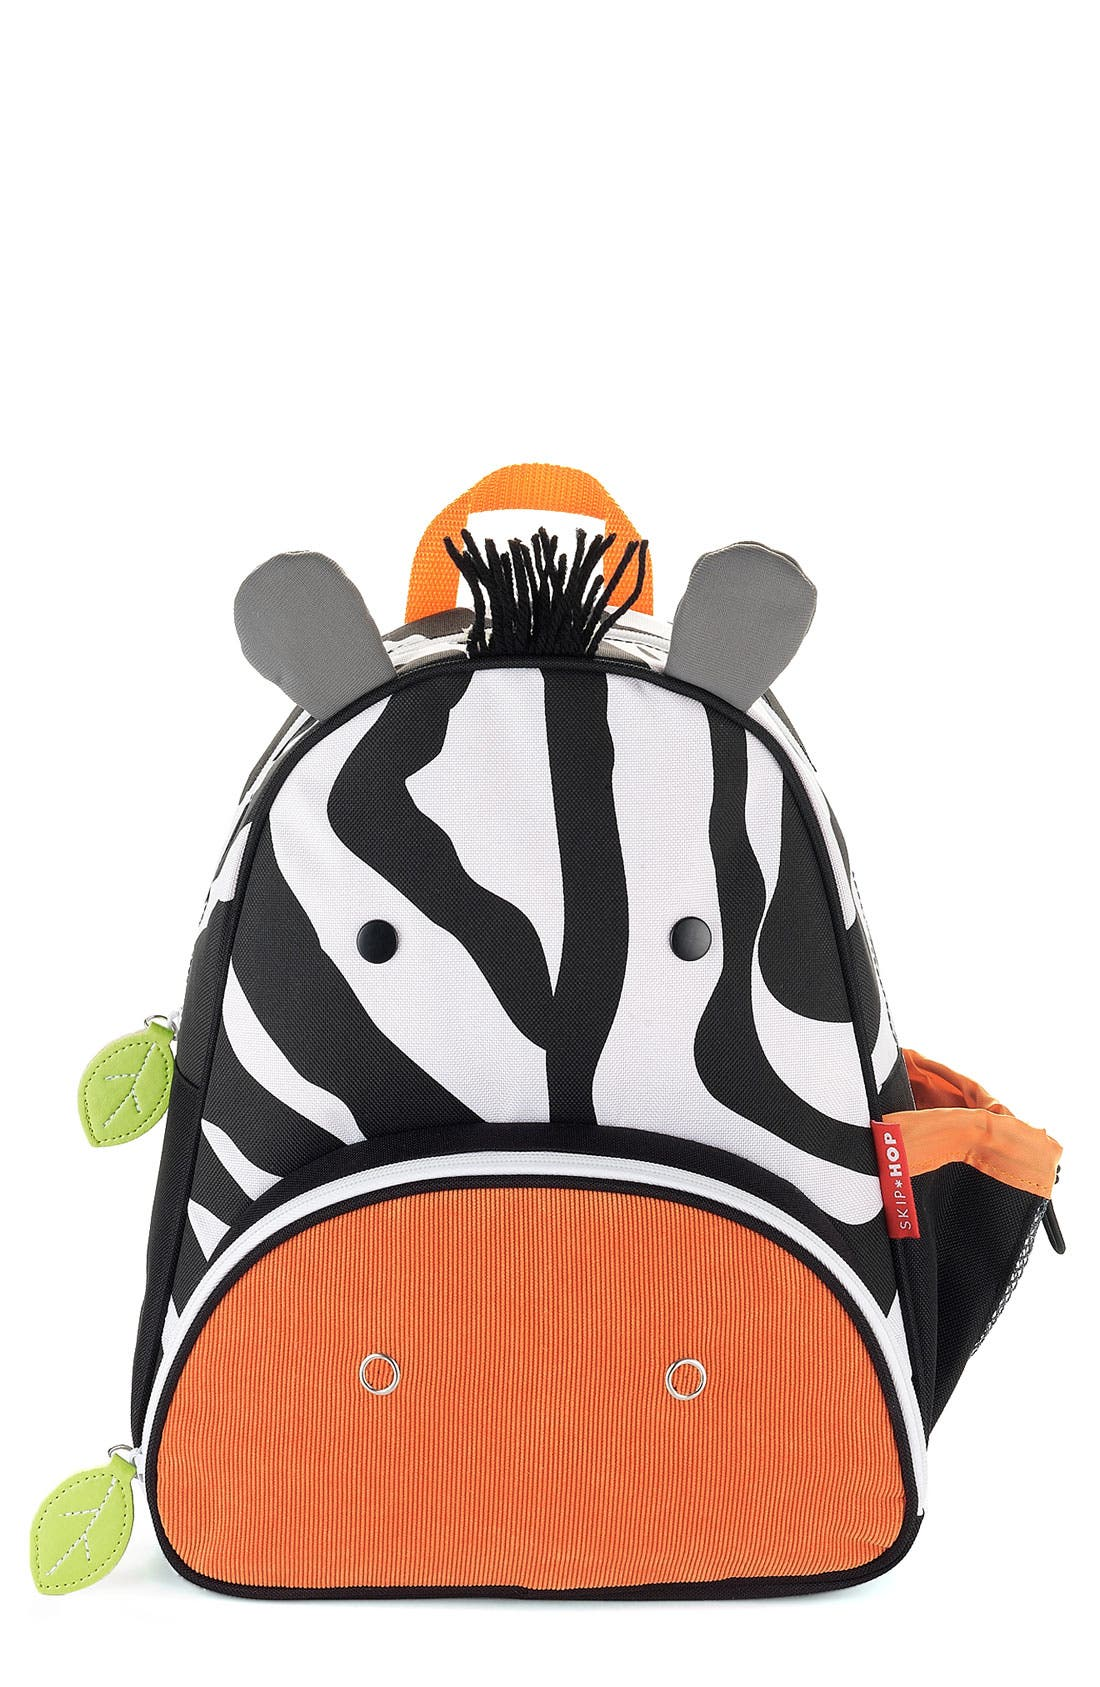 Zoo Pack Backpack,                             Main thumbnail 1, color,                             White/ Black